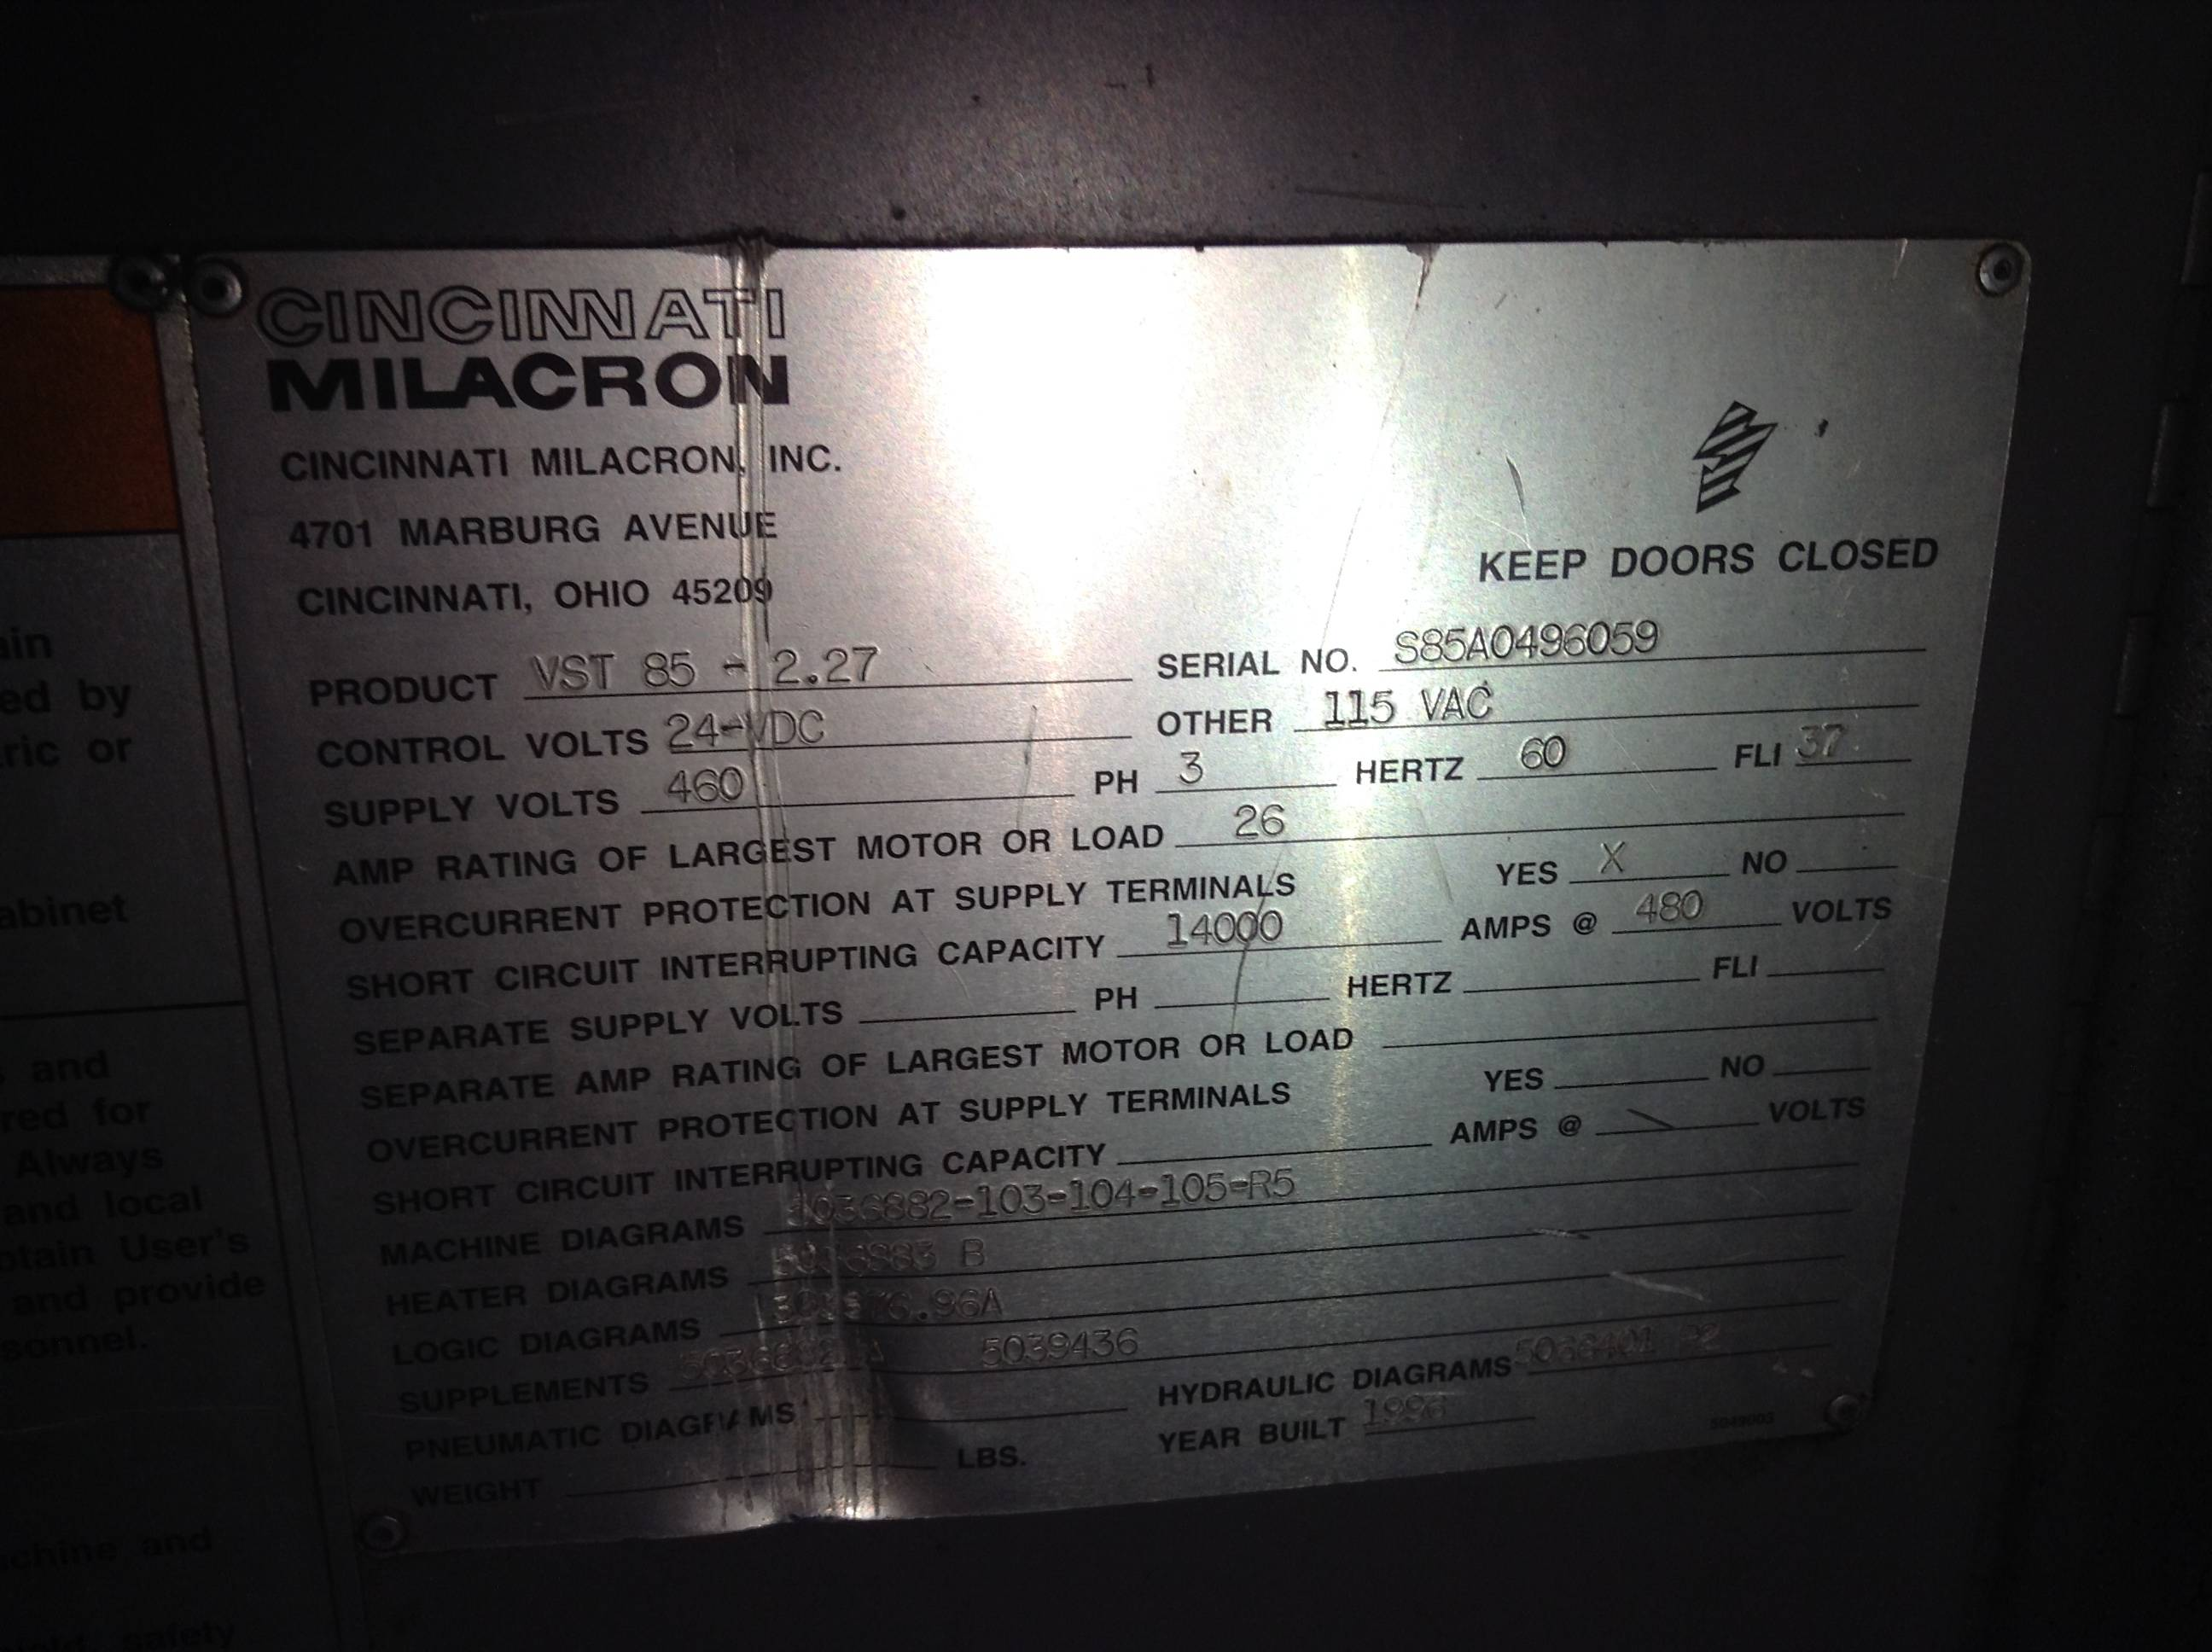 Cincinnati Milacron Camac Vst Operator Interface 3 424 2065a Control System For An On International Tractor Hydraulics Diagram Image Gallery Click To View Larger